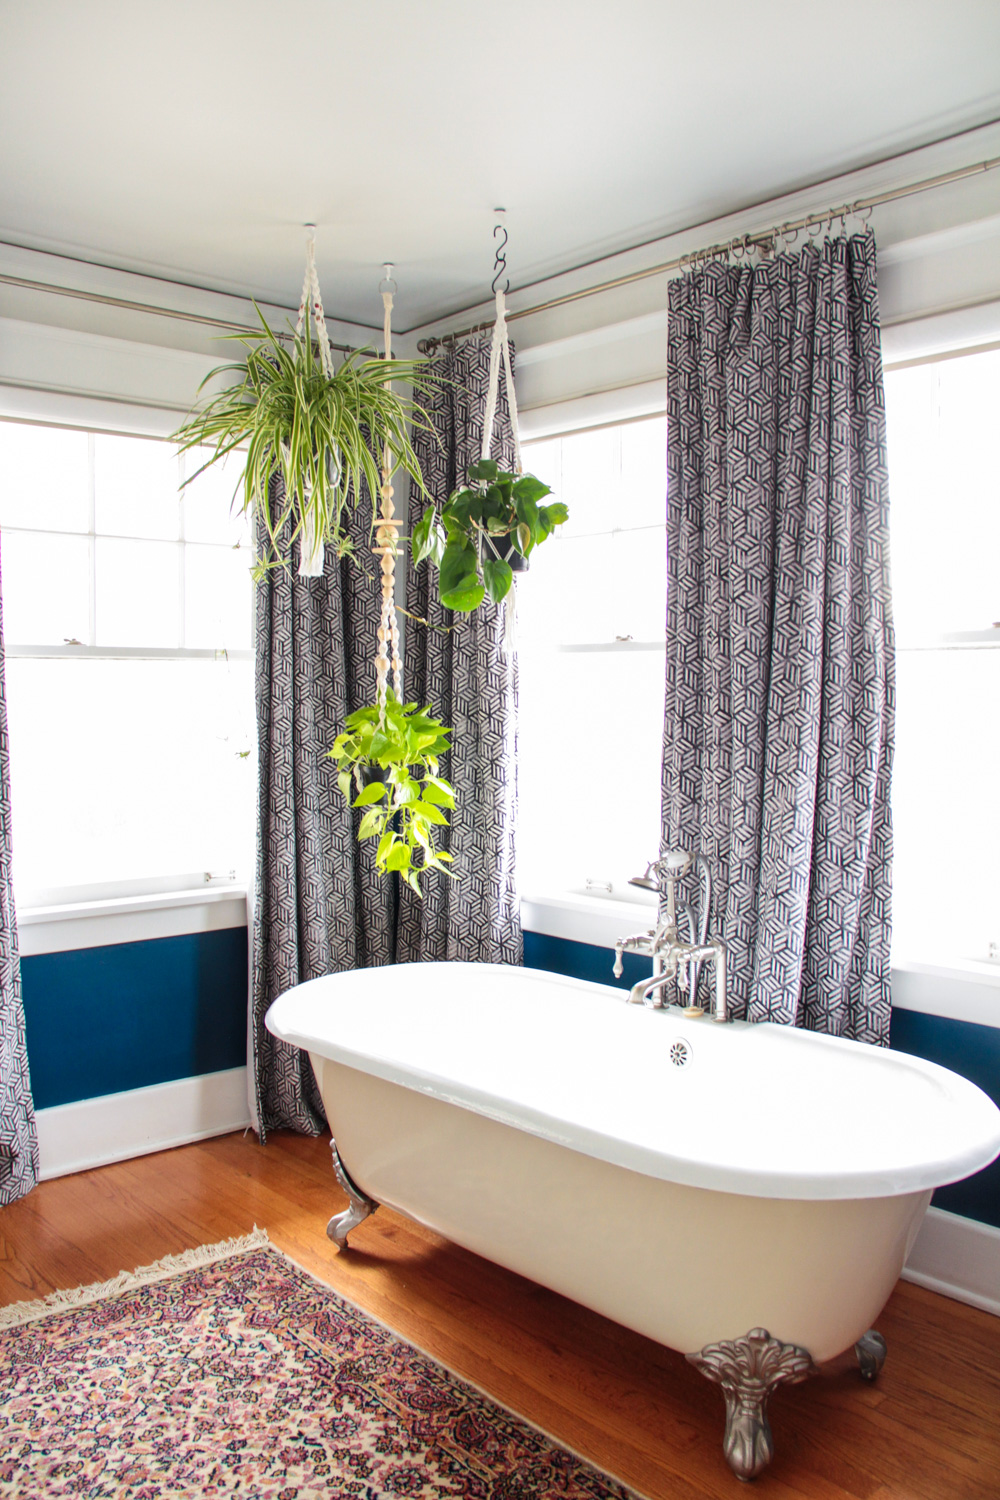 Bohemian Master Bathroom with Hanging Plants above Clawfoot Tub